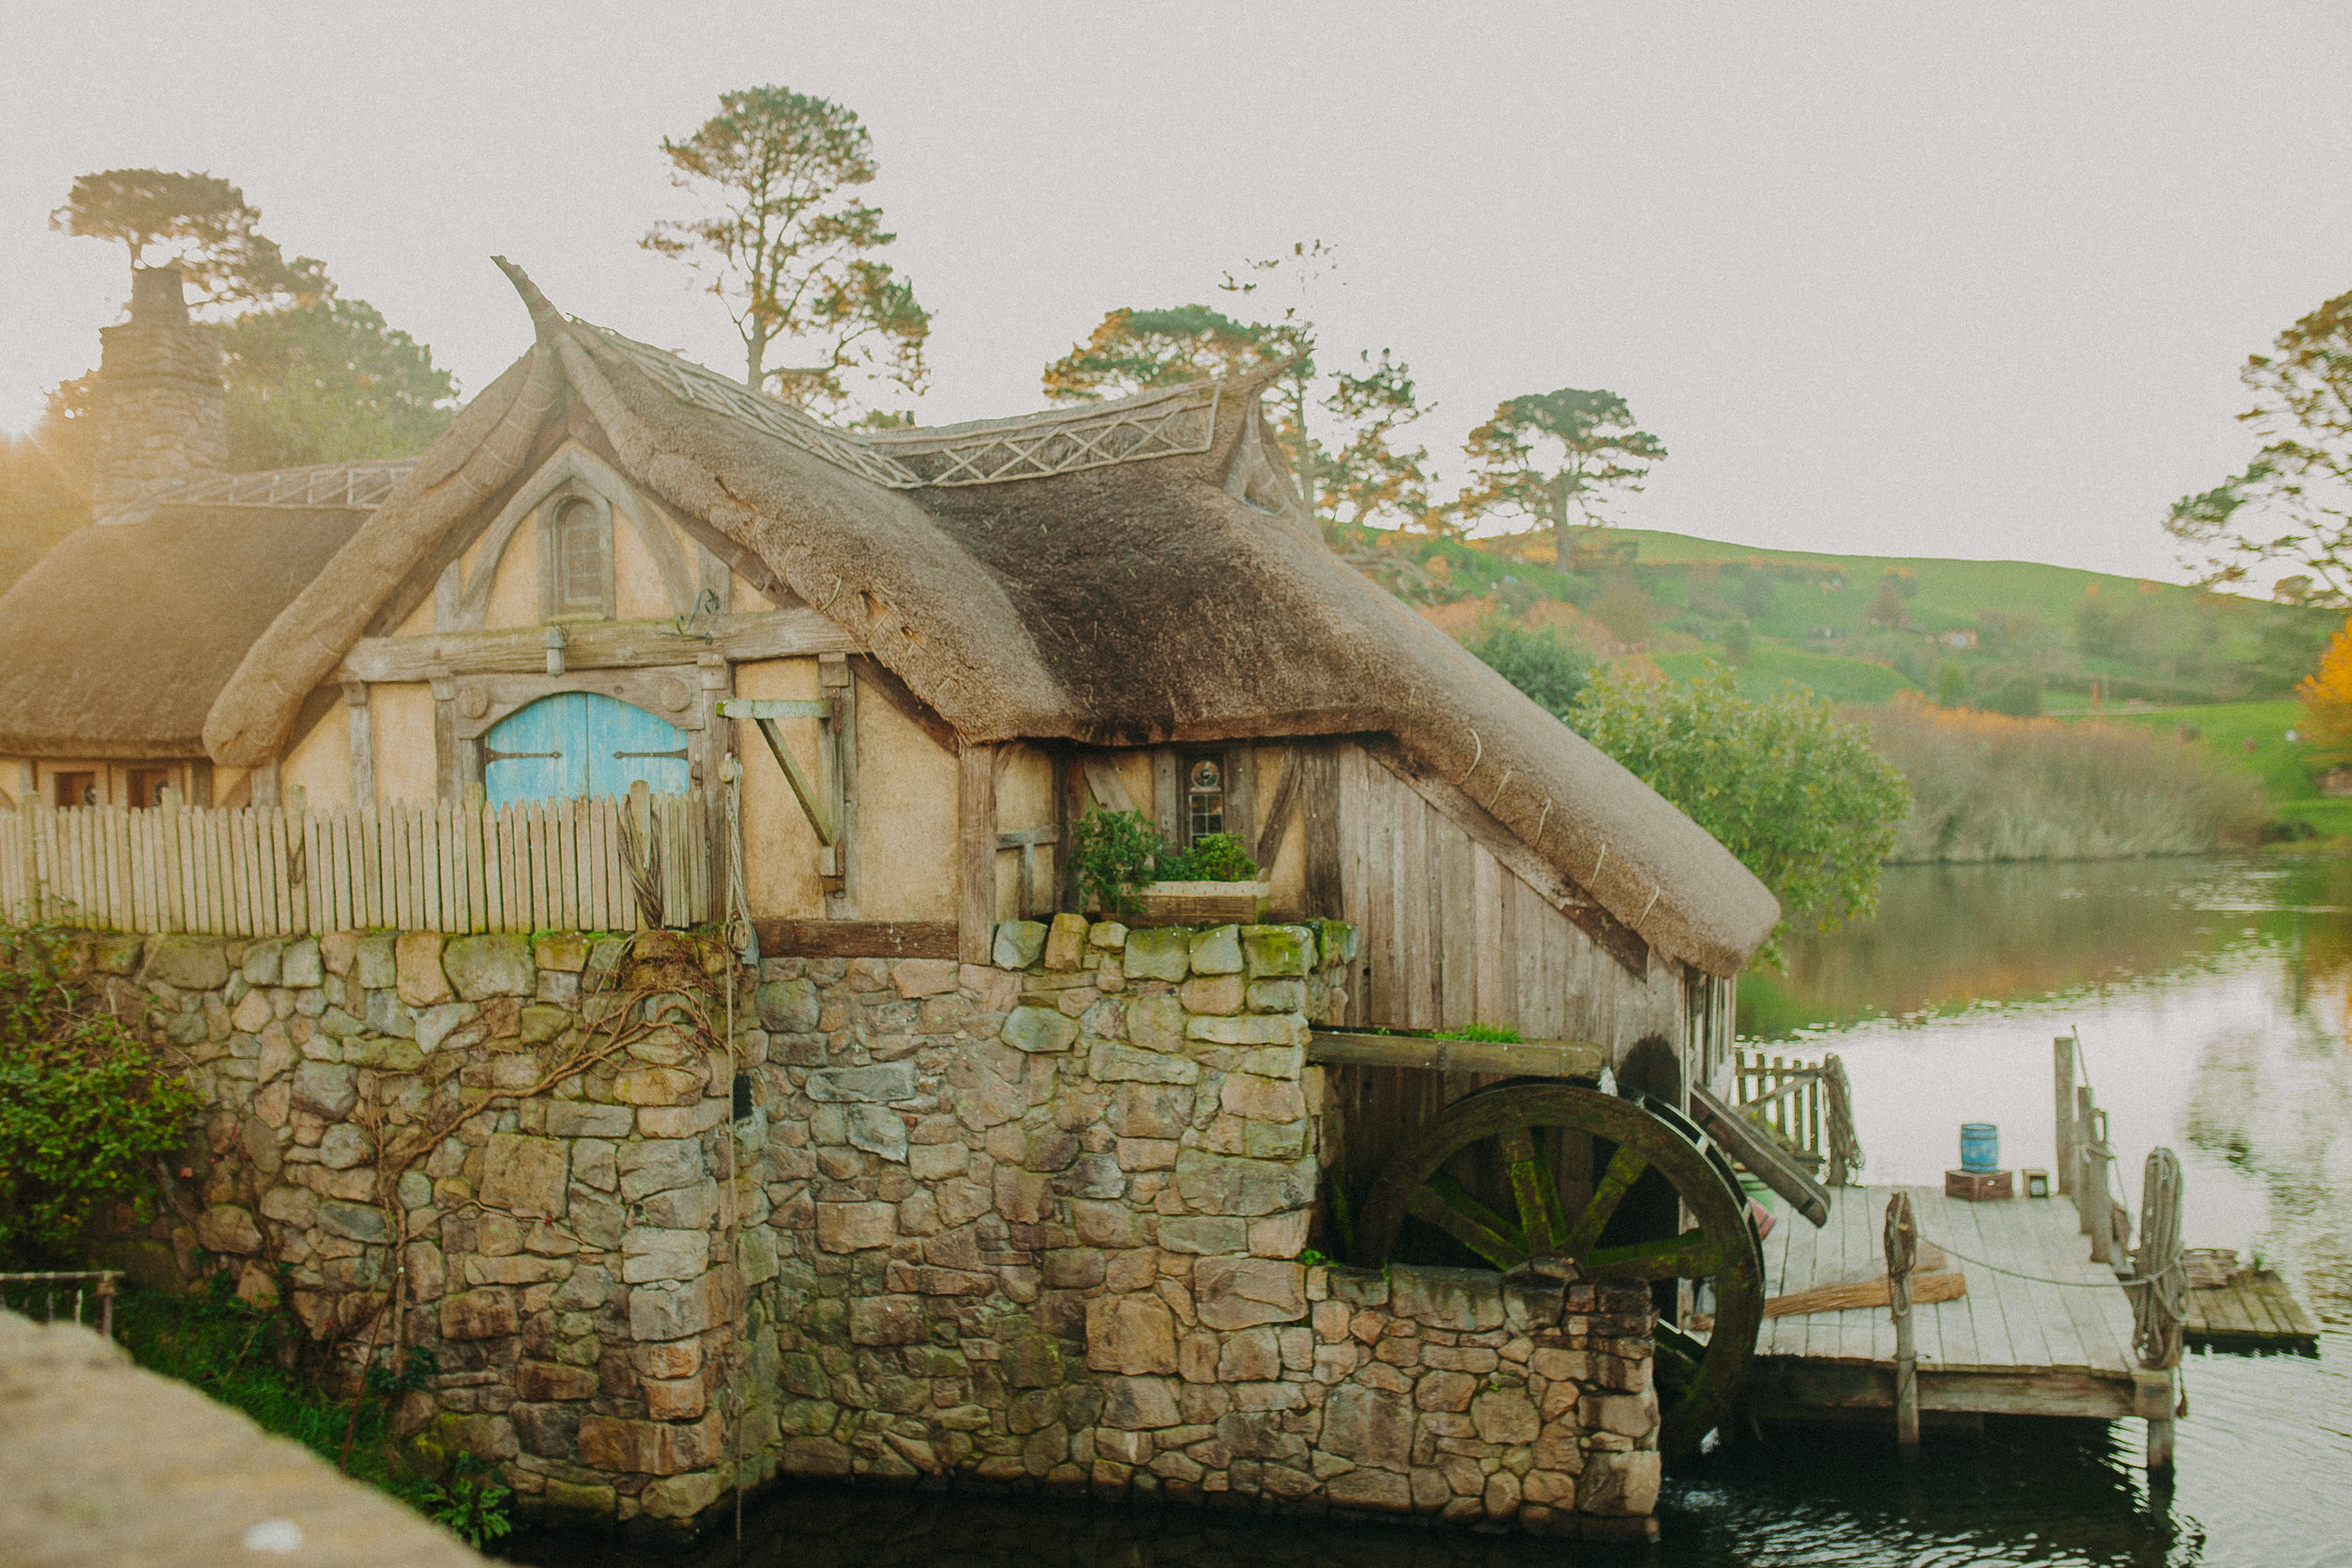 hobbiton-new-zealand-lord-of-the-rings-tour-14.jpg